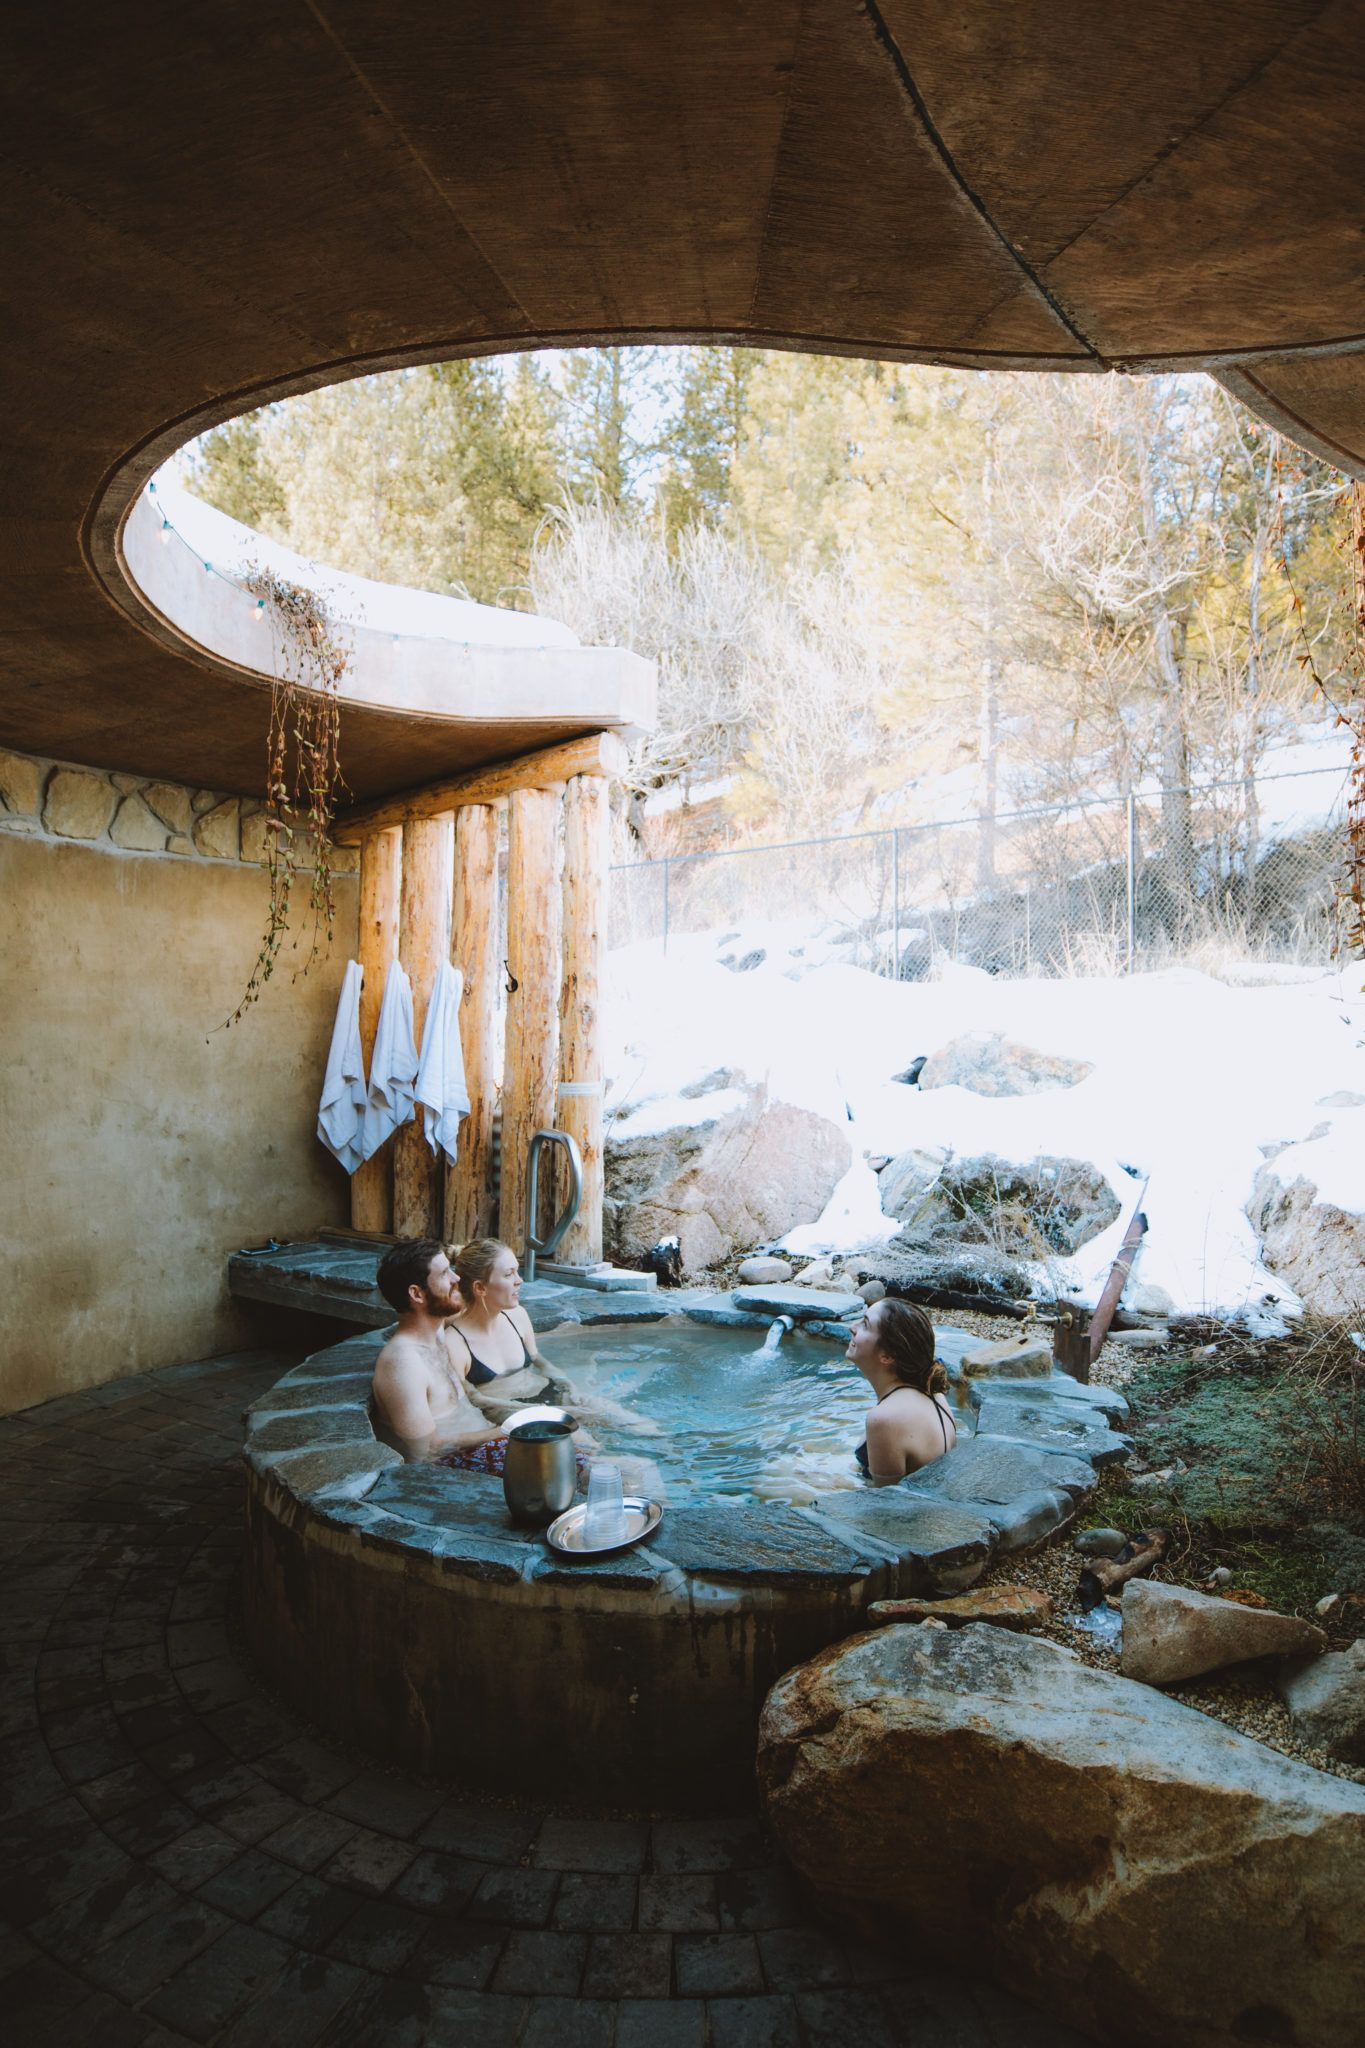 A Magical Escape To The Springs In Idaho City Dreamy Hot Springs Alert Idaho City Idaho Travel Hot Springs